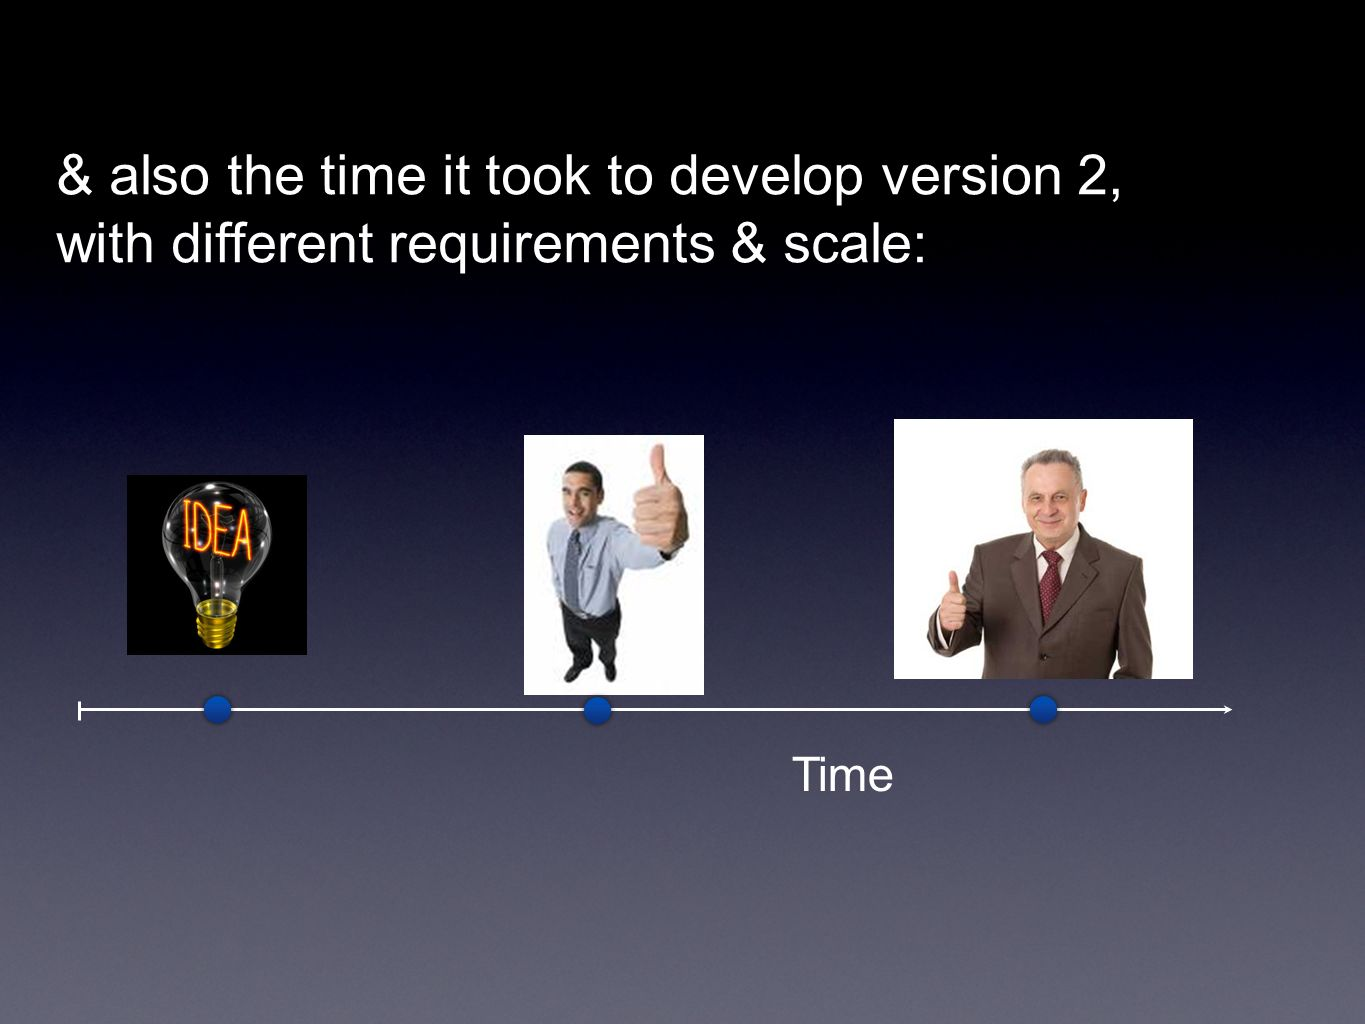 Time & also the time it took to develop version 2, with different requirements & scale: